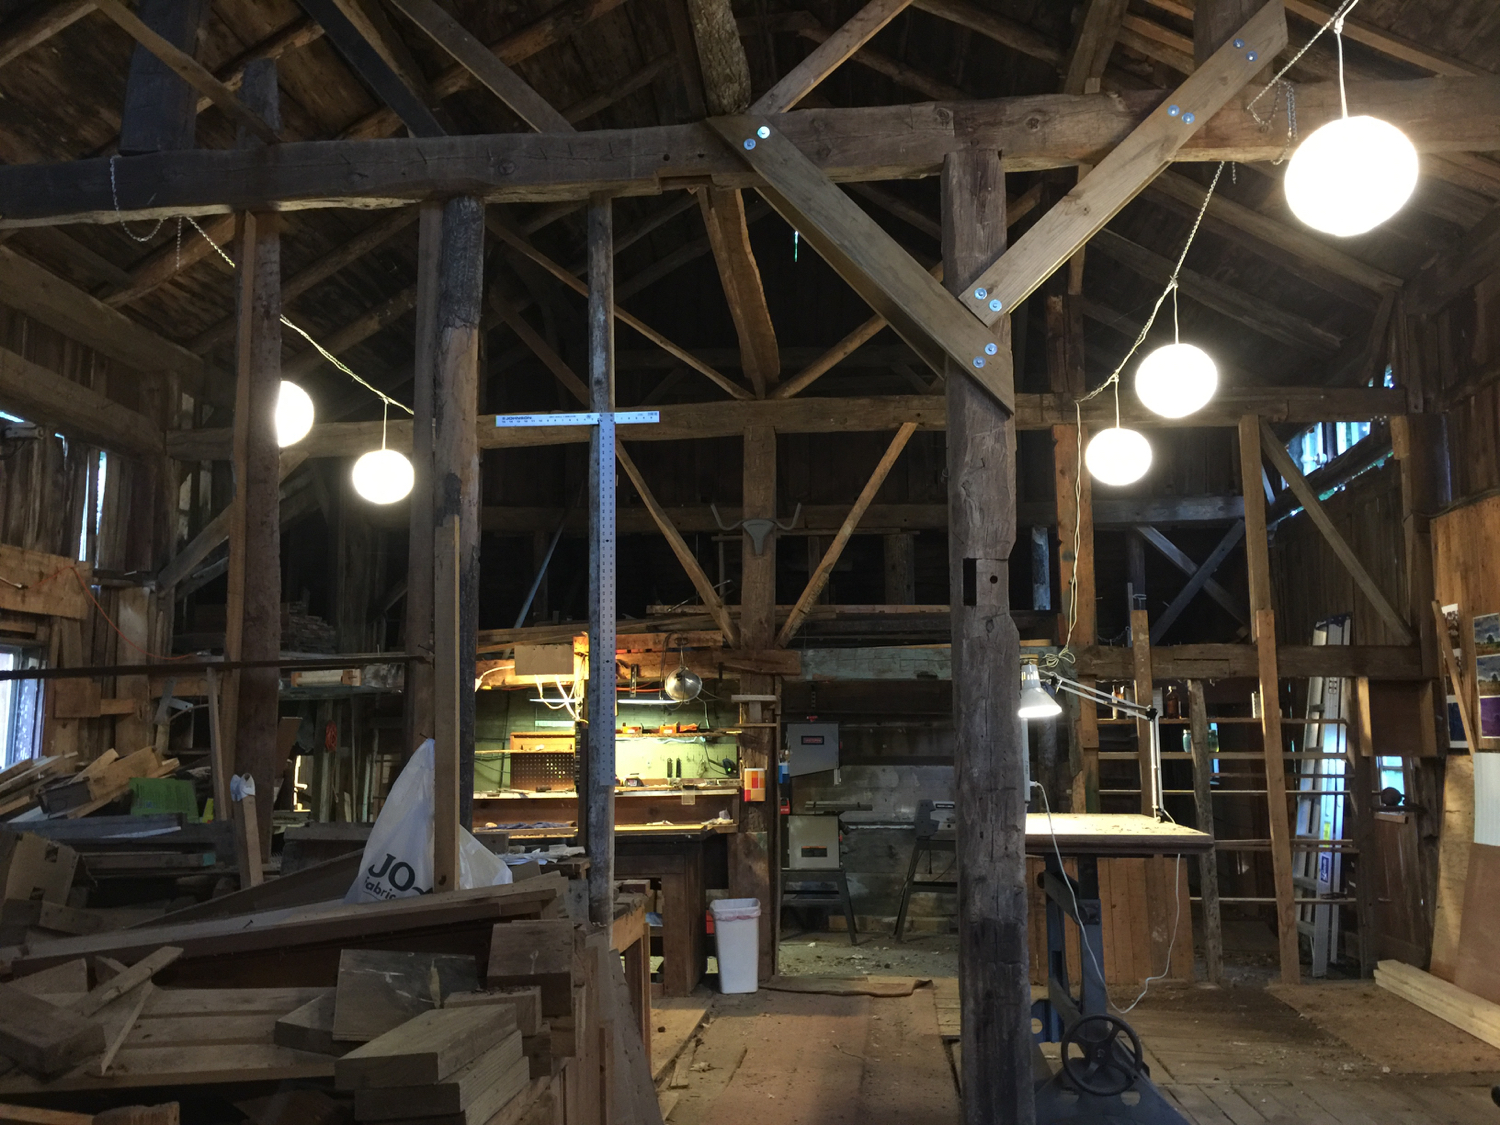 In the barn — copyright Trace Meek